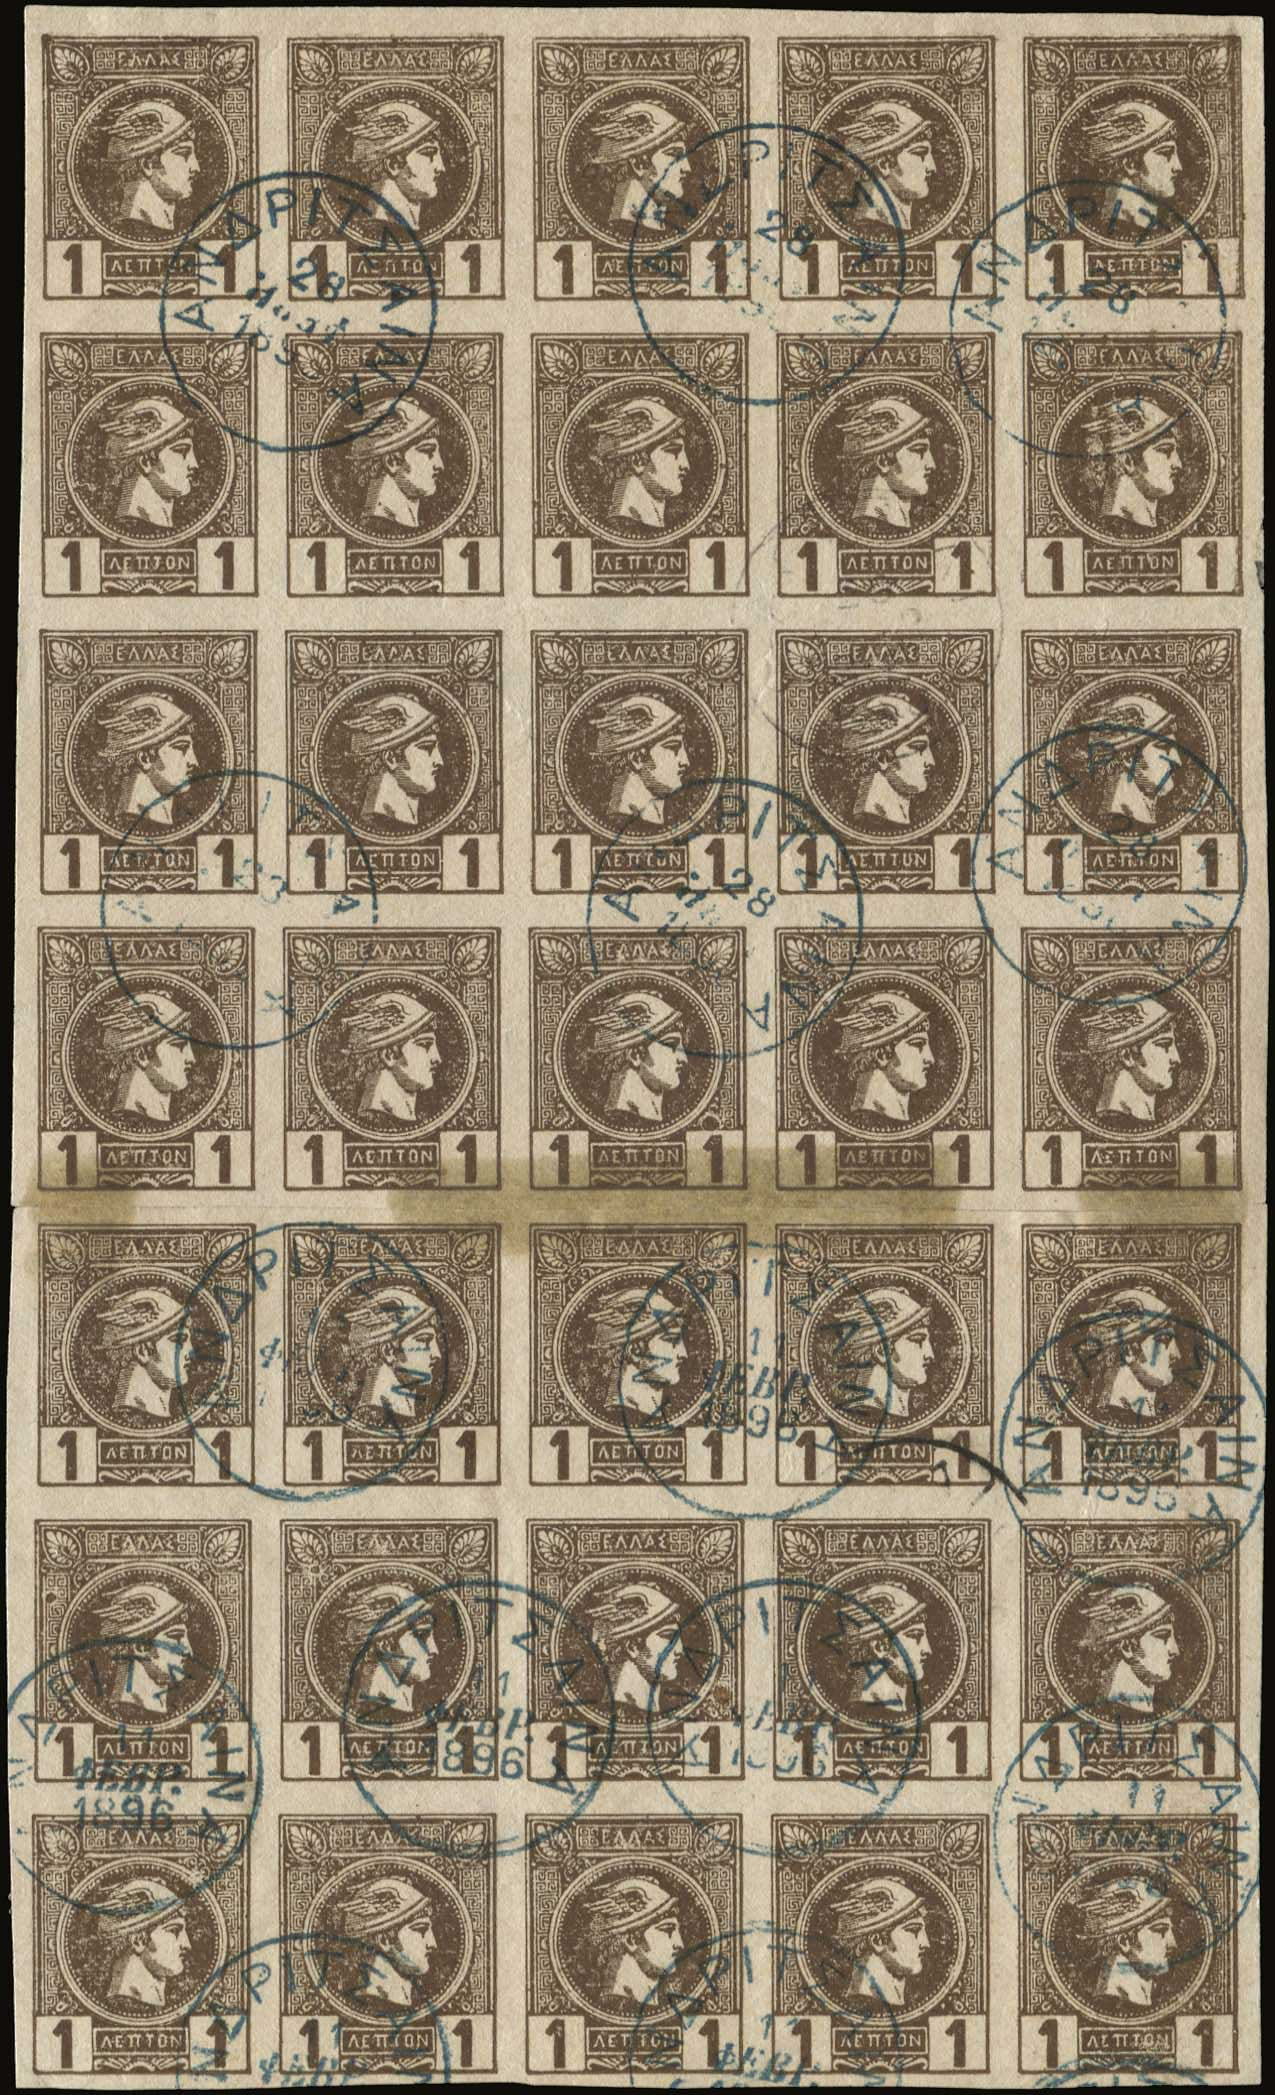 Lot 1024 - GREECE-  SMALL HERMES HEAD athens issues -  A. Karamitsos Public Auction 599 General Stamp Sale